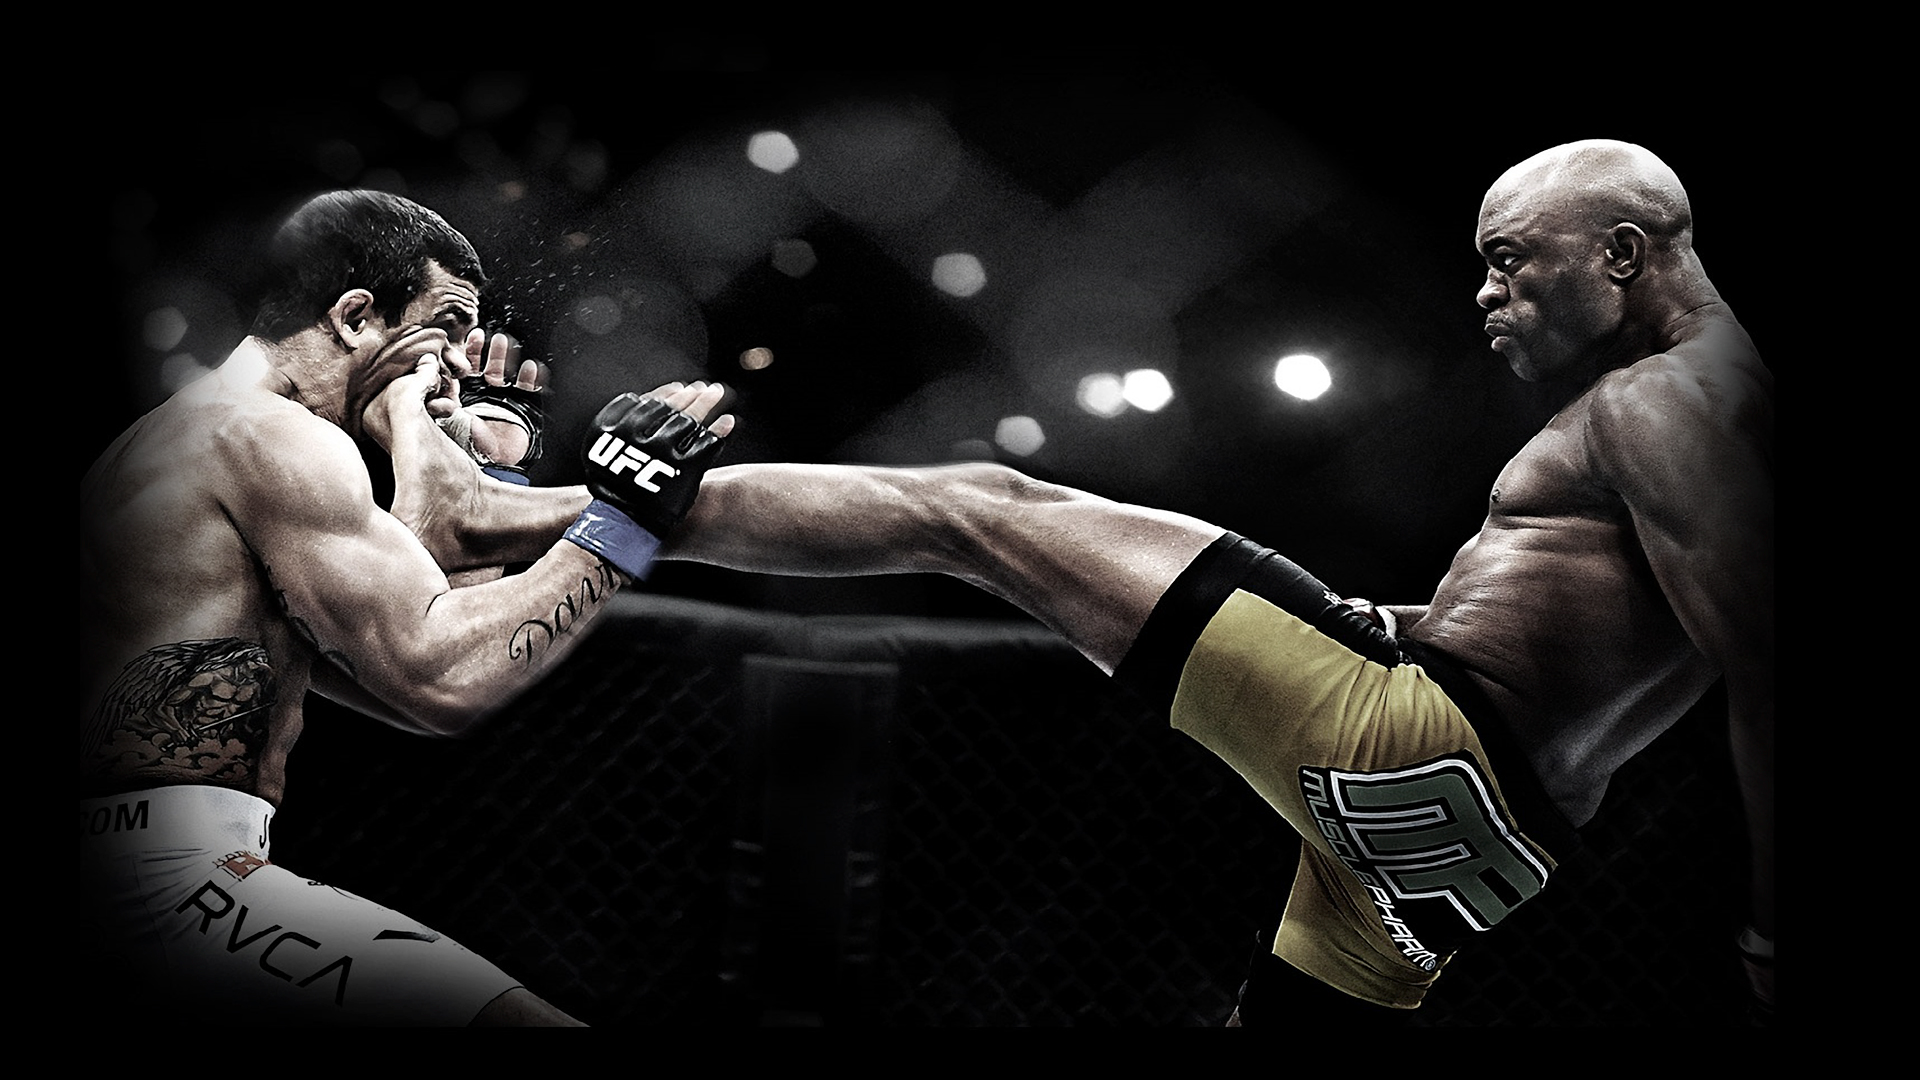 UFC Wallpaper Image Picture HD 1920x1080